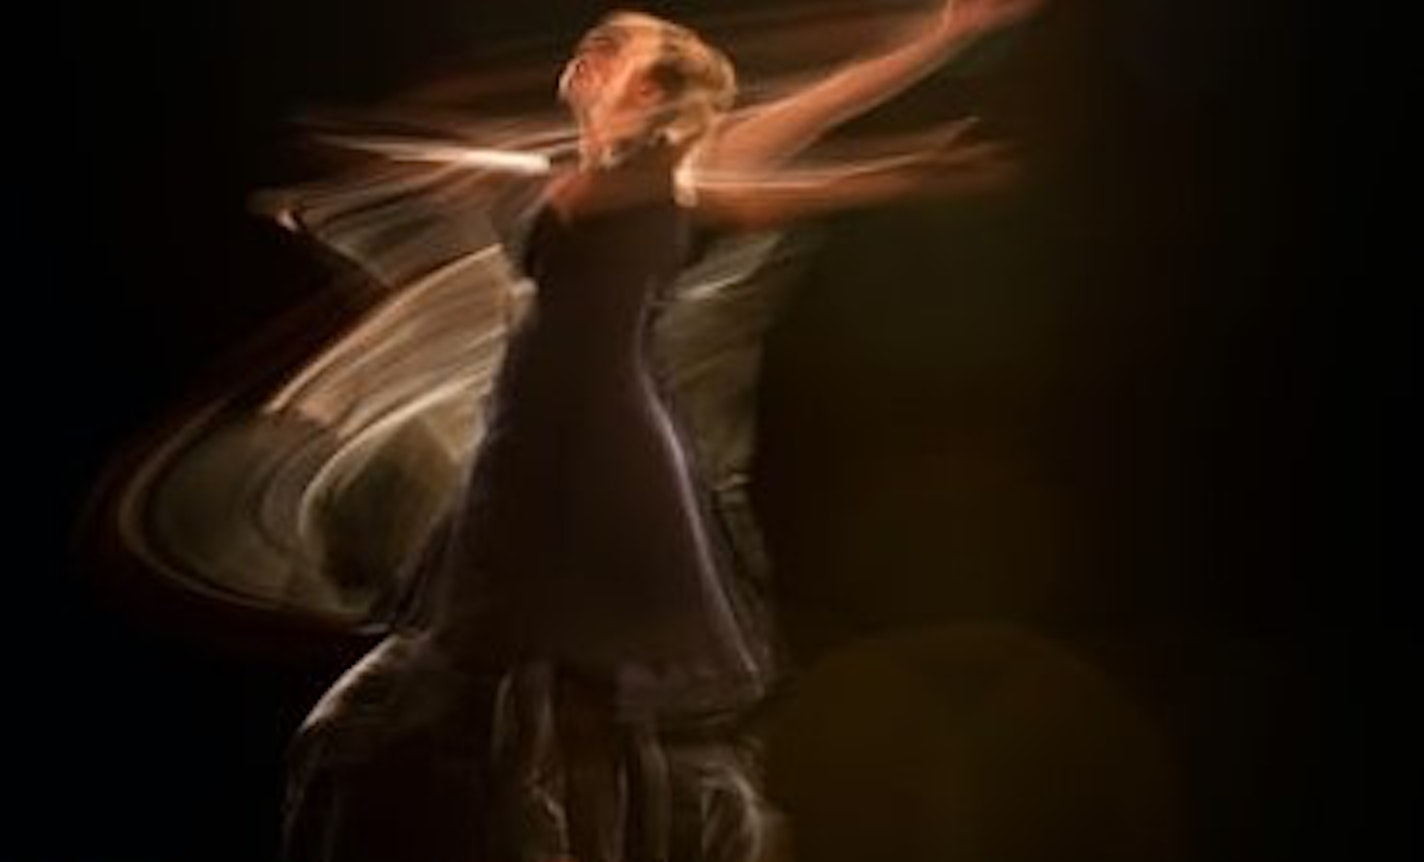 Honoring All Life's Experiences: A Dance Meditation